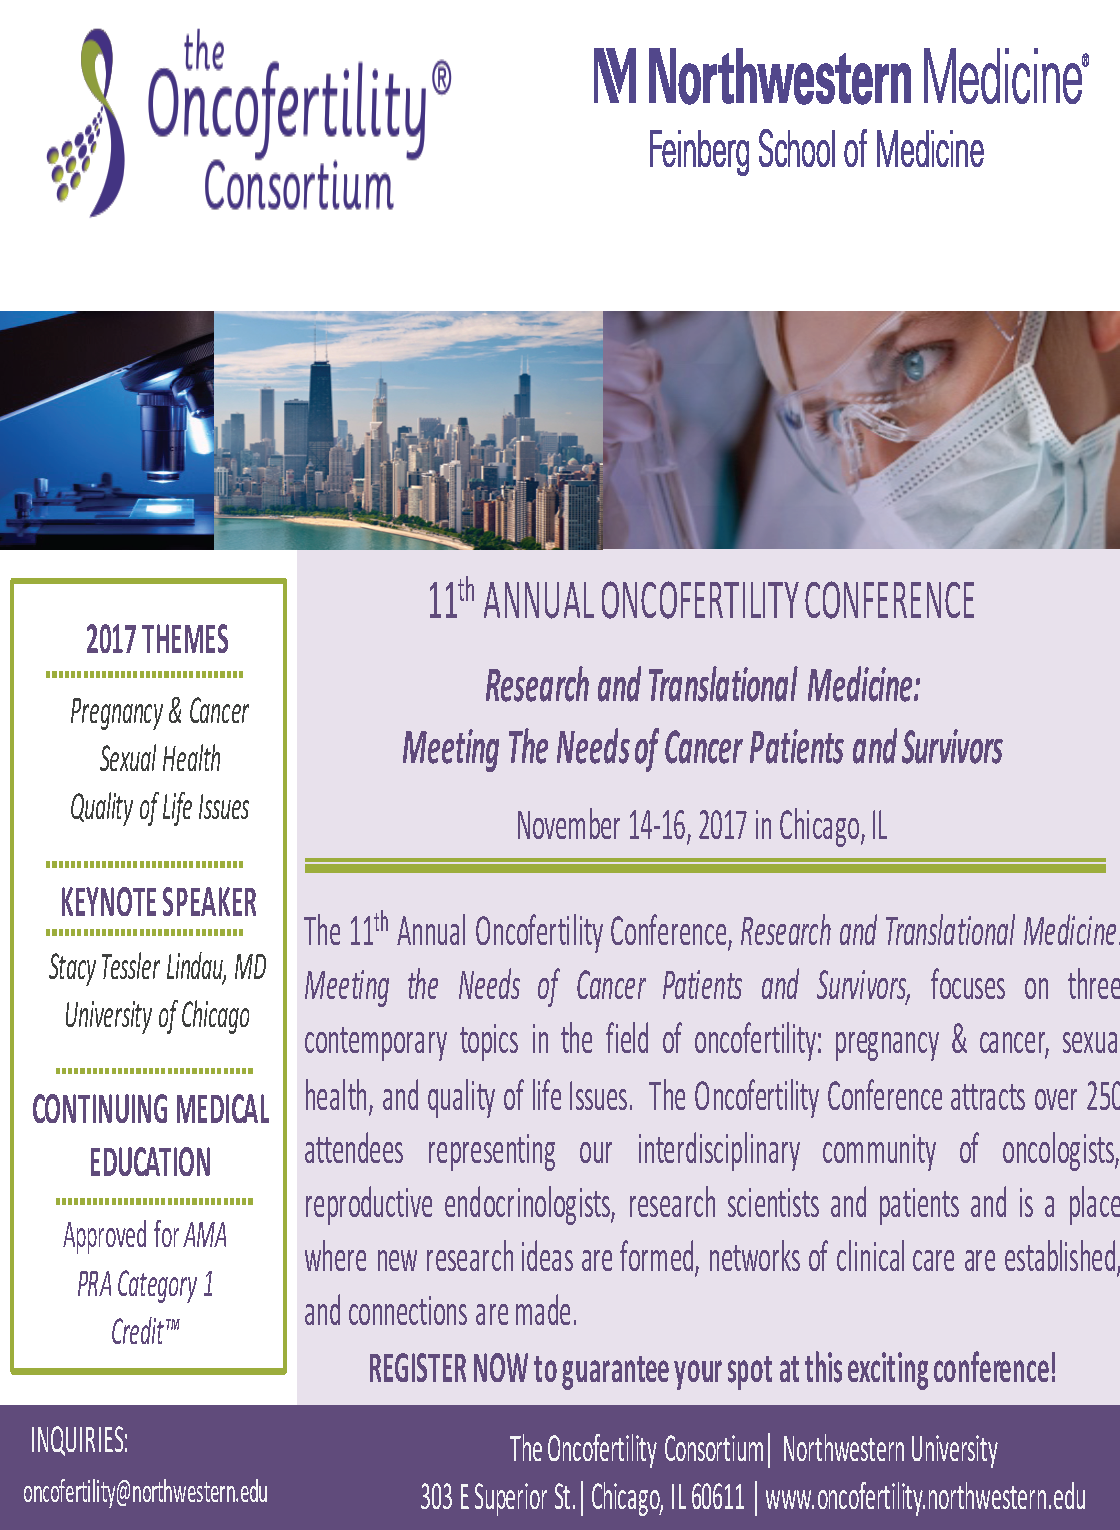 Annual Oncofertility Conference Registration